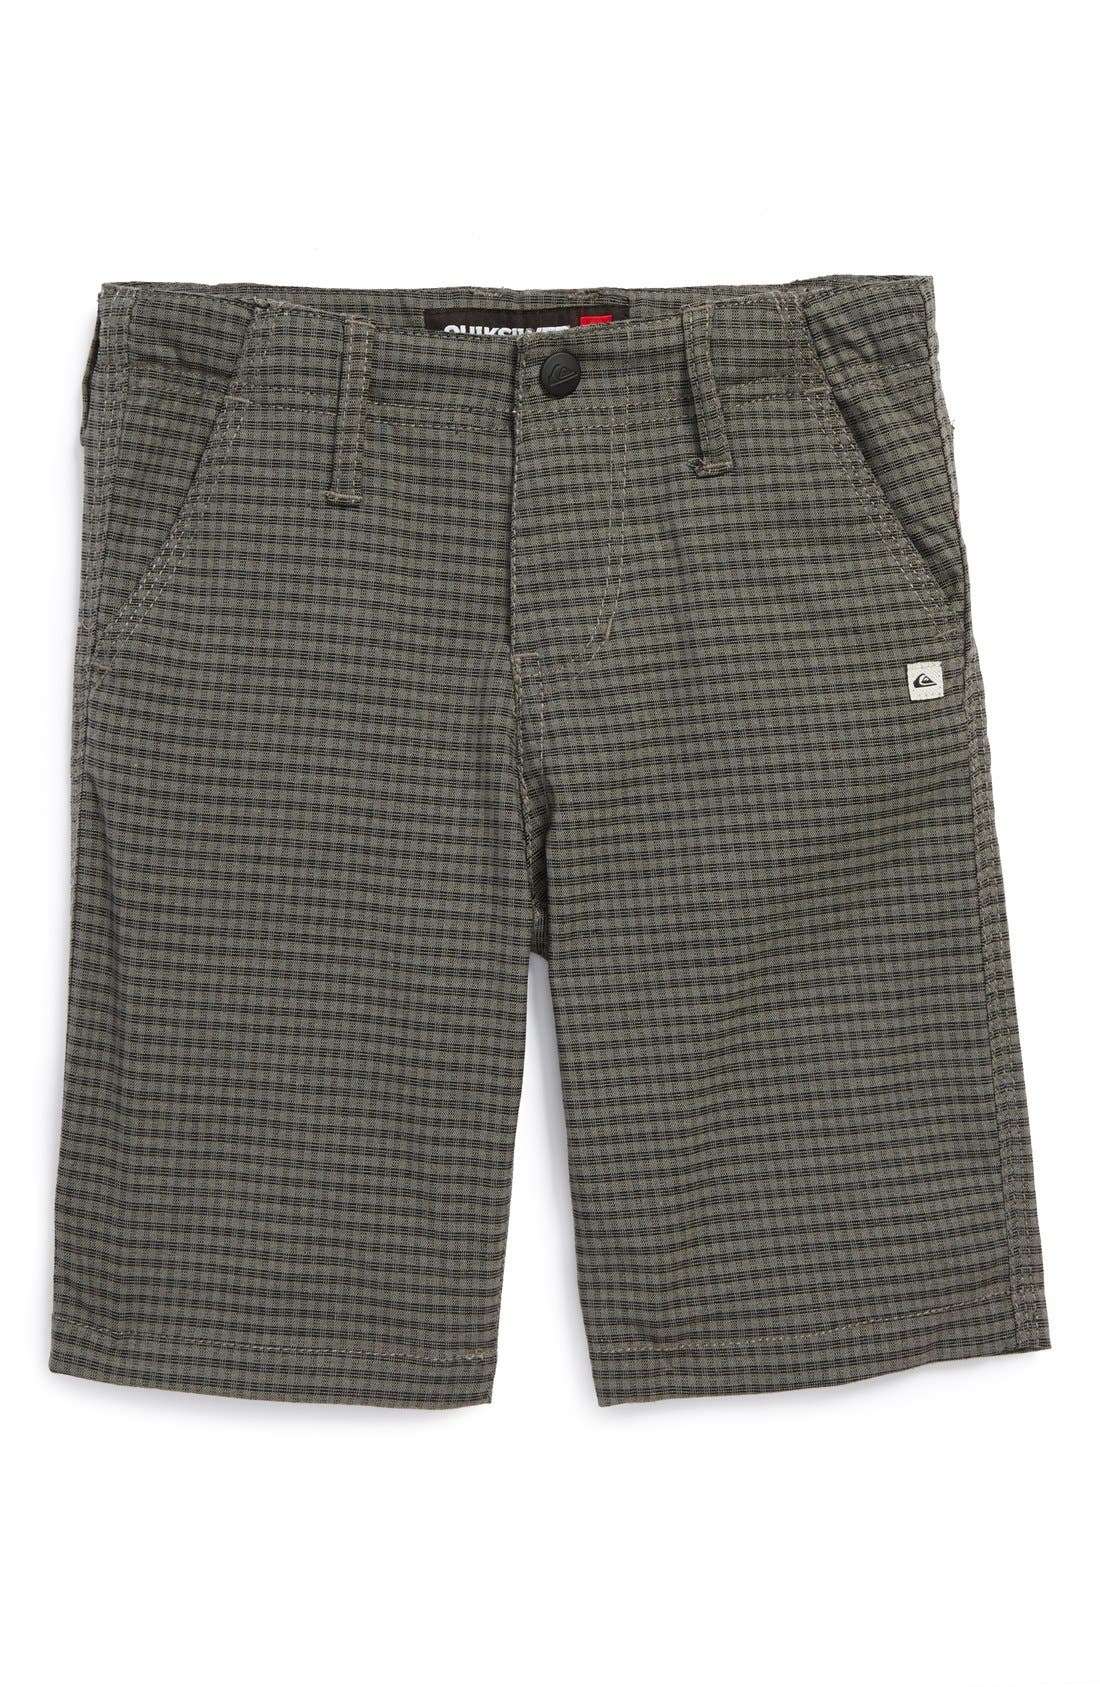 Main Image - Quiksilver 'Stamp It' Shorts (Toddler Boys)